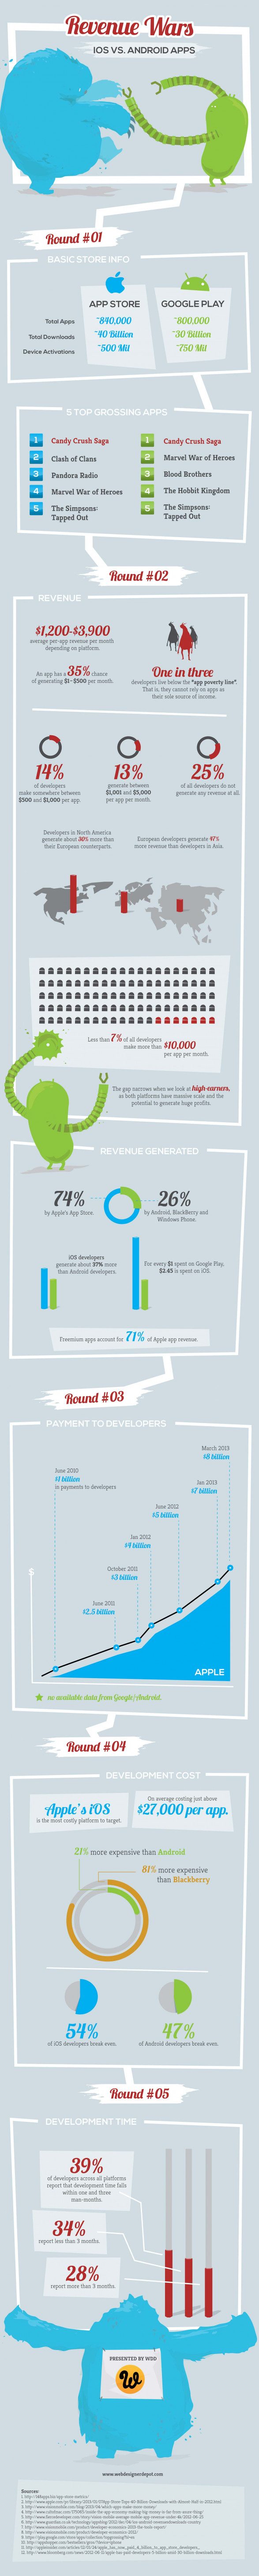 iOS vs Android: Revenue Wars